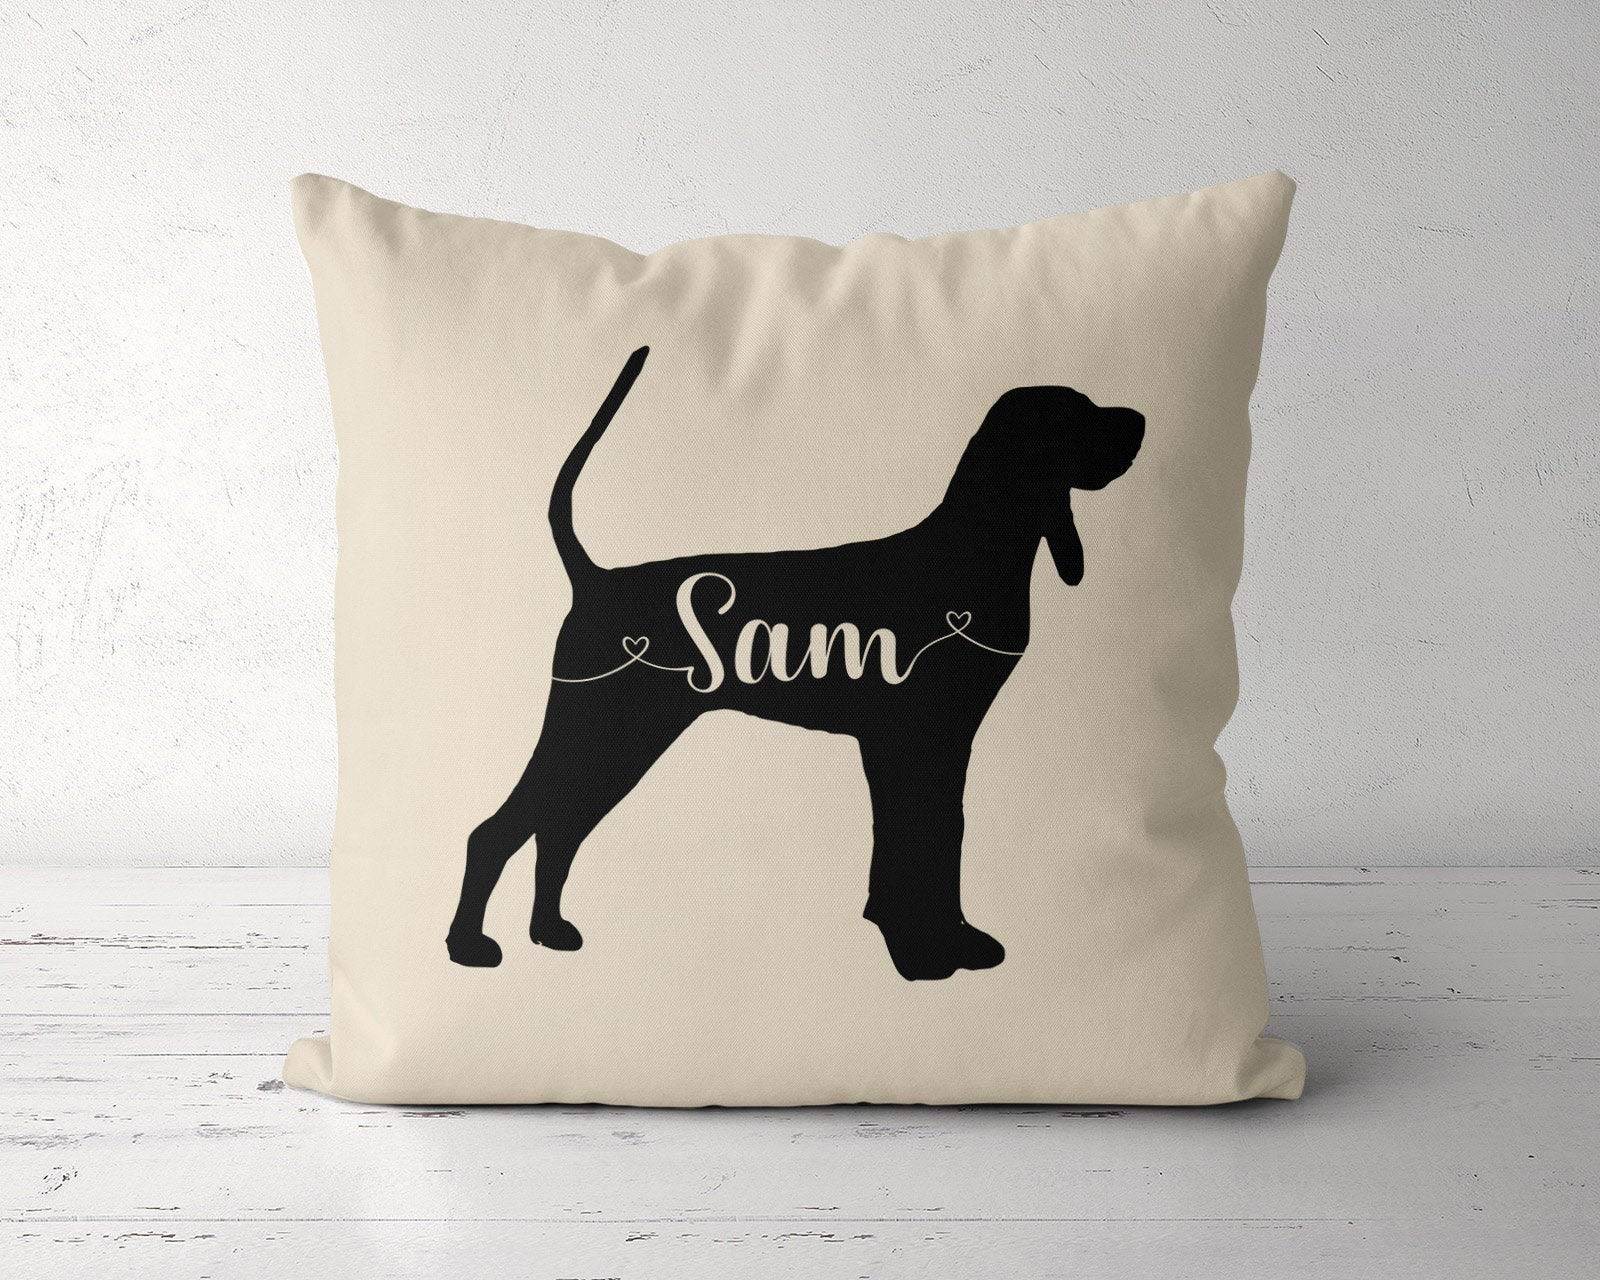 Custom Black and Tan Coonhound Pillow, Personalized Coonhound Pillow Case Cover, Birthday Gift for Coonhound Owner Lover, Coonhound Dog Mom without Insert,Housewarming Gift to Lover Family Friend